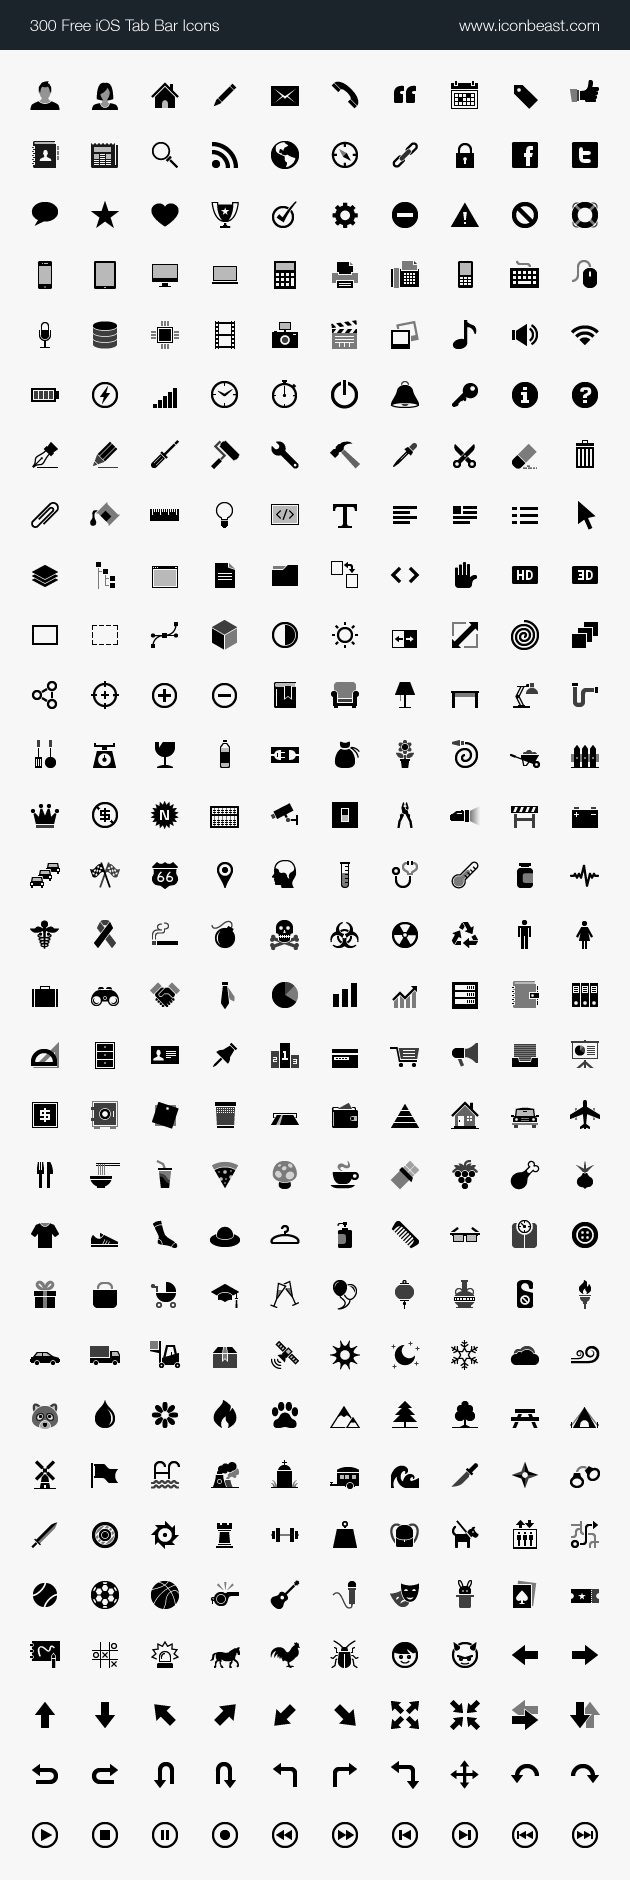 IconBeast Lite | 500 Free iOS Tab Bar Icons for iPhone and iPad